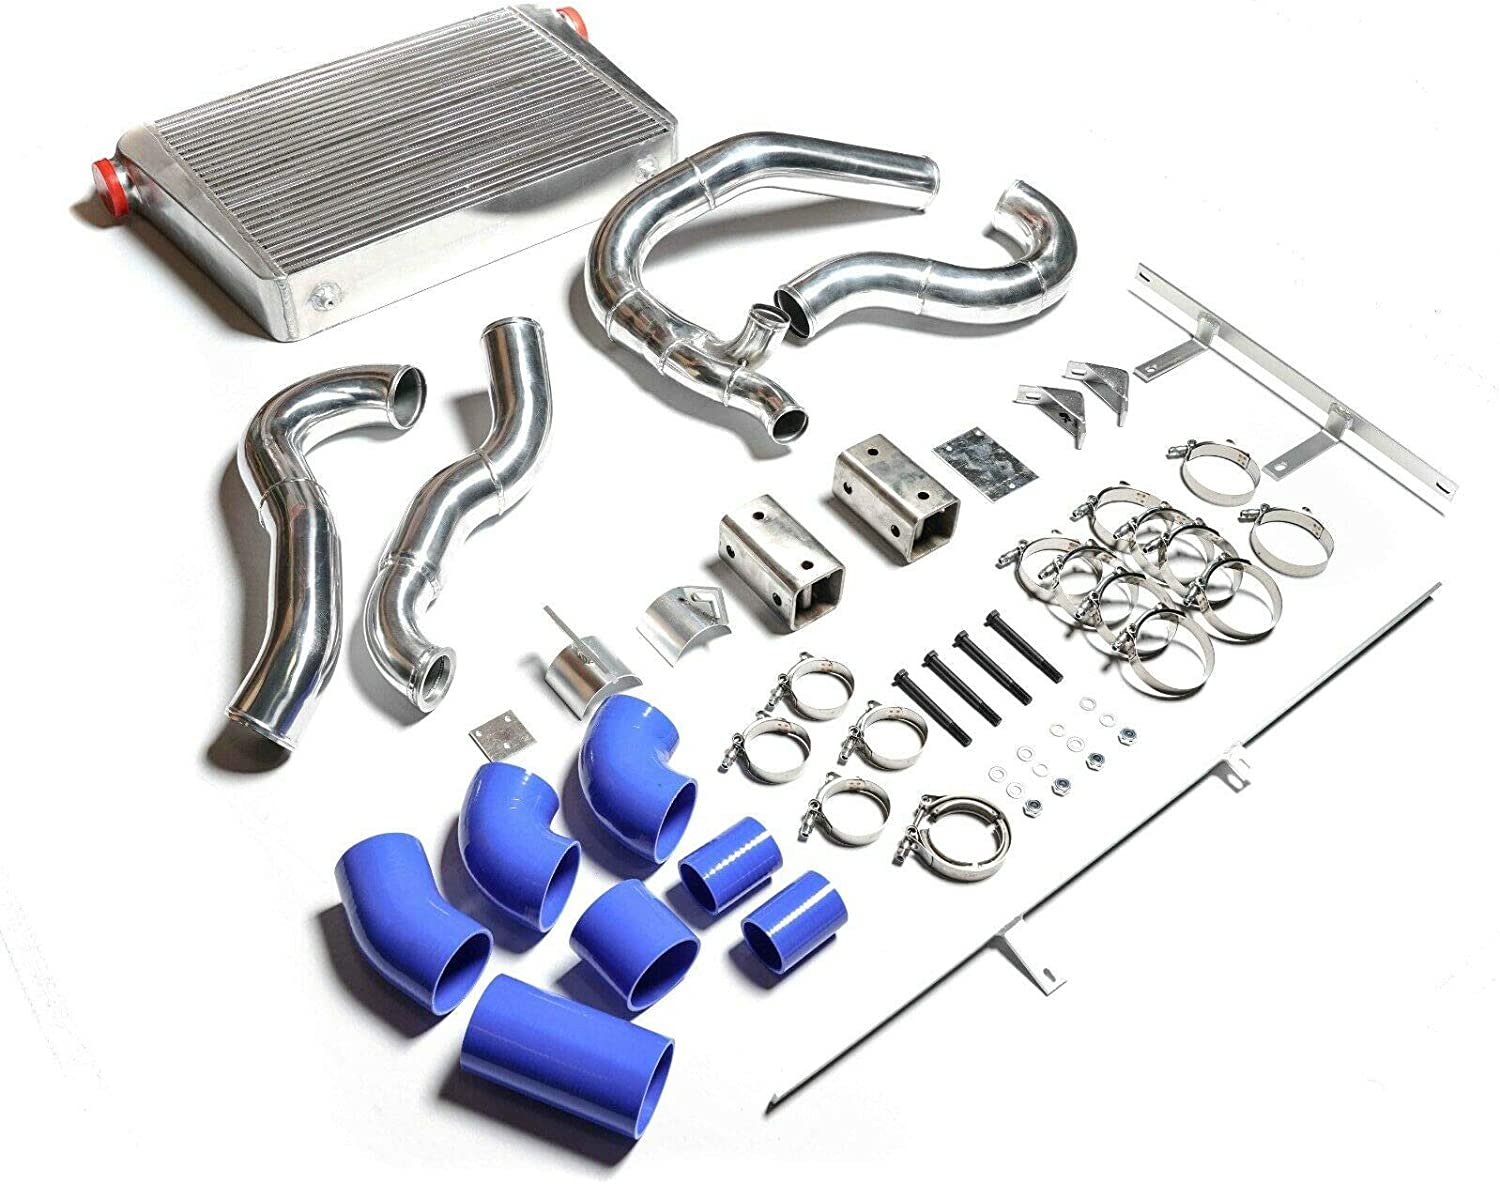 GXP 40% OFF Cheap Sale Intercooler Year-end gift Kit with Pipes Compatible Clamps Boots 19